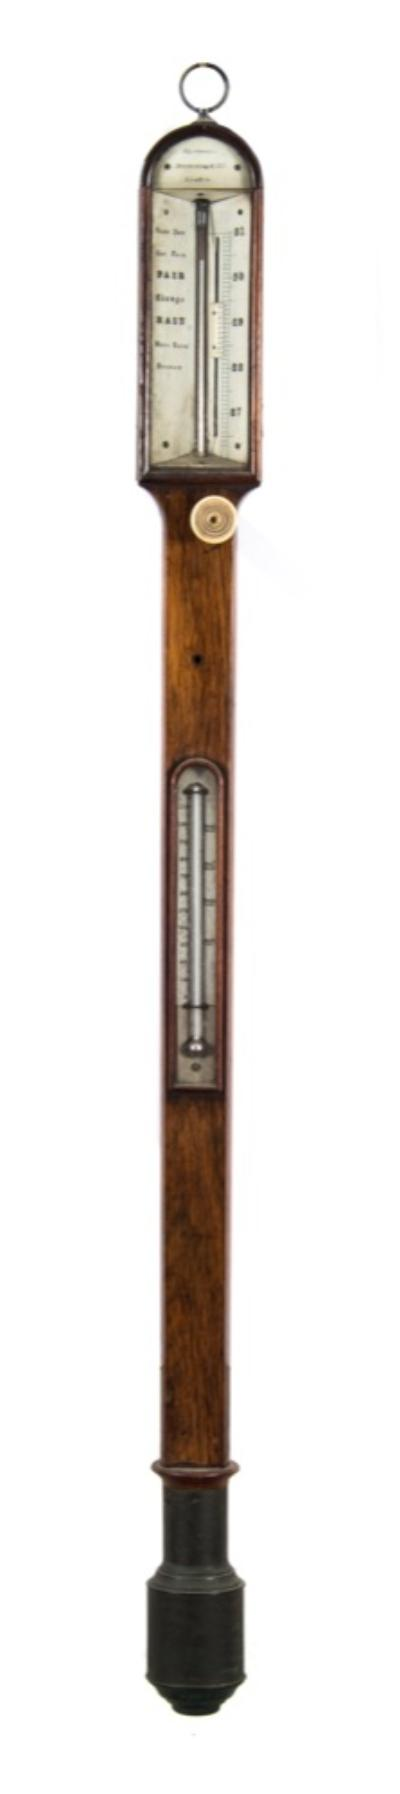 Spencer Browning and Co, London, a 19th century mahogany marine barometer the bone dials aslant having typical barometer markings with a vernier scale set from below and signed within the arch by the maker Spencer Browing & Co, London, the mahogany curved top case having a brass cistern to the base and brass bound holes for fixing to a gymbal, height 94cms.